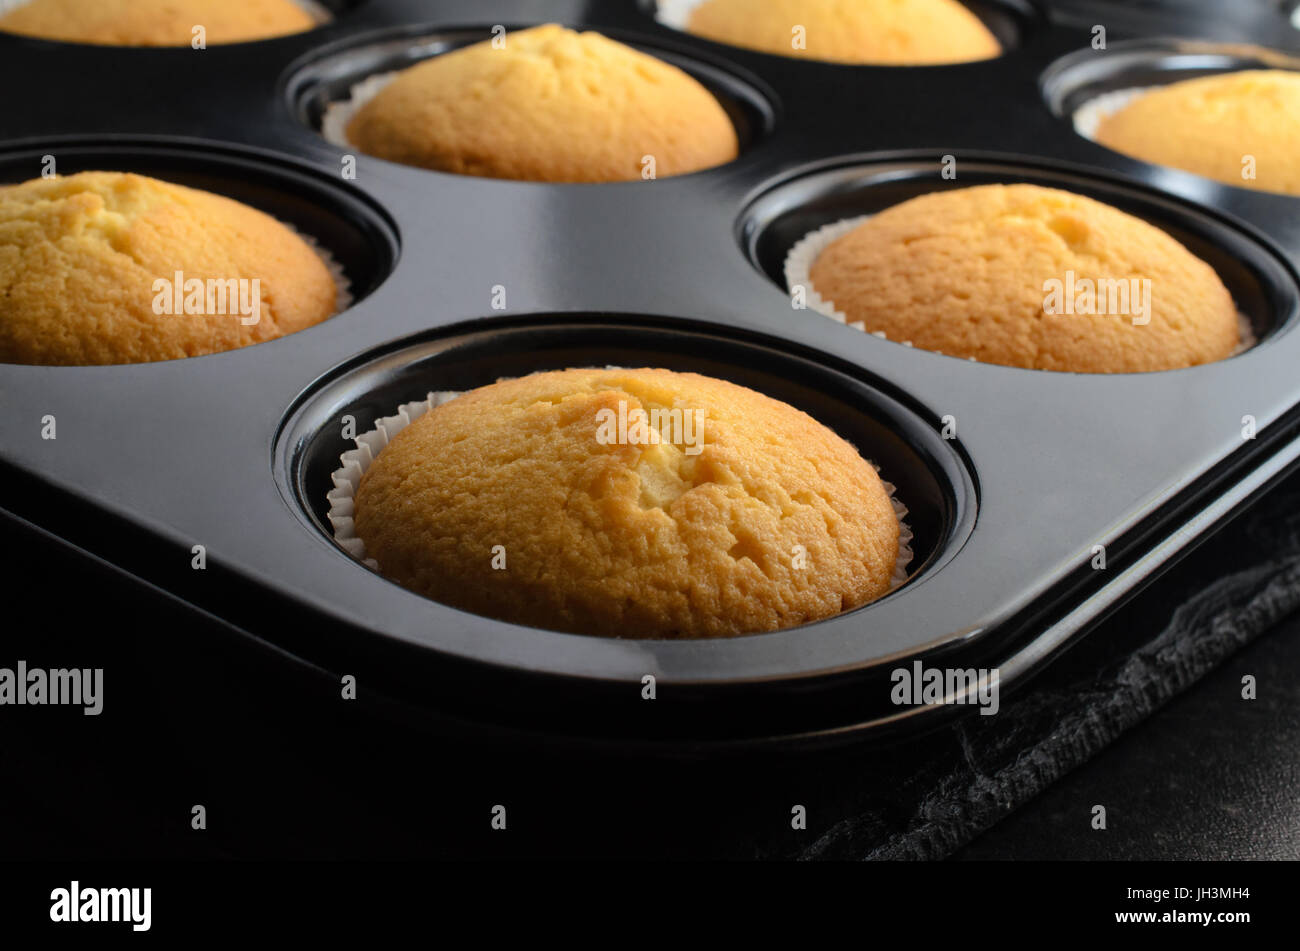 Home baking concept with multiple vanilla cupcakes, in paper cases inside bun tin, cooling on black slate. Stock Photo